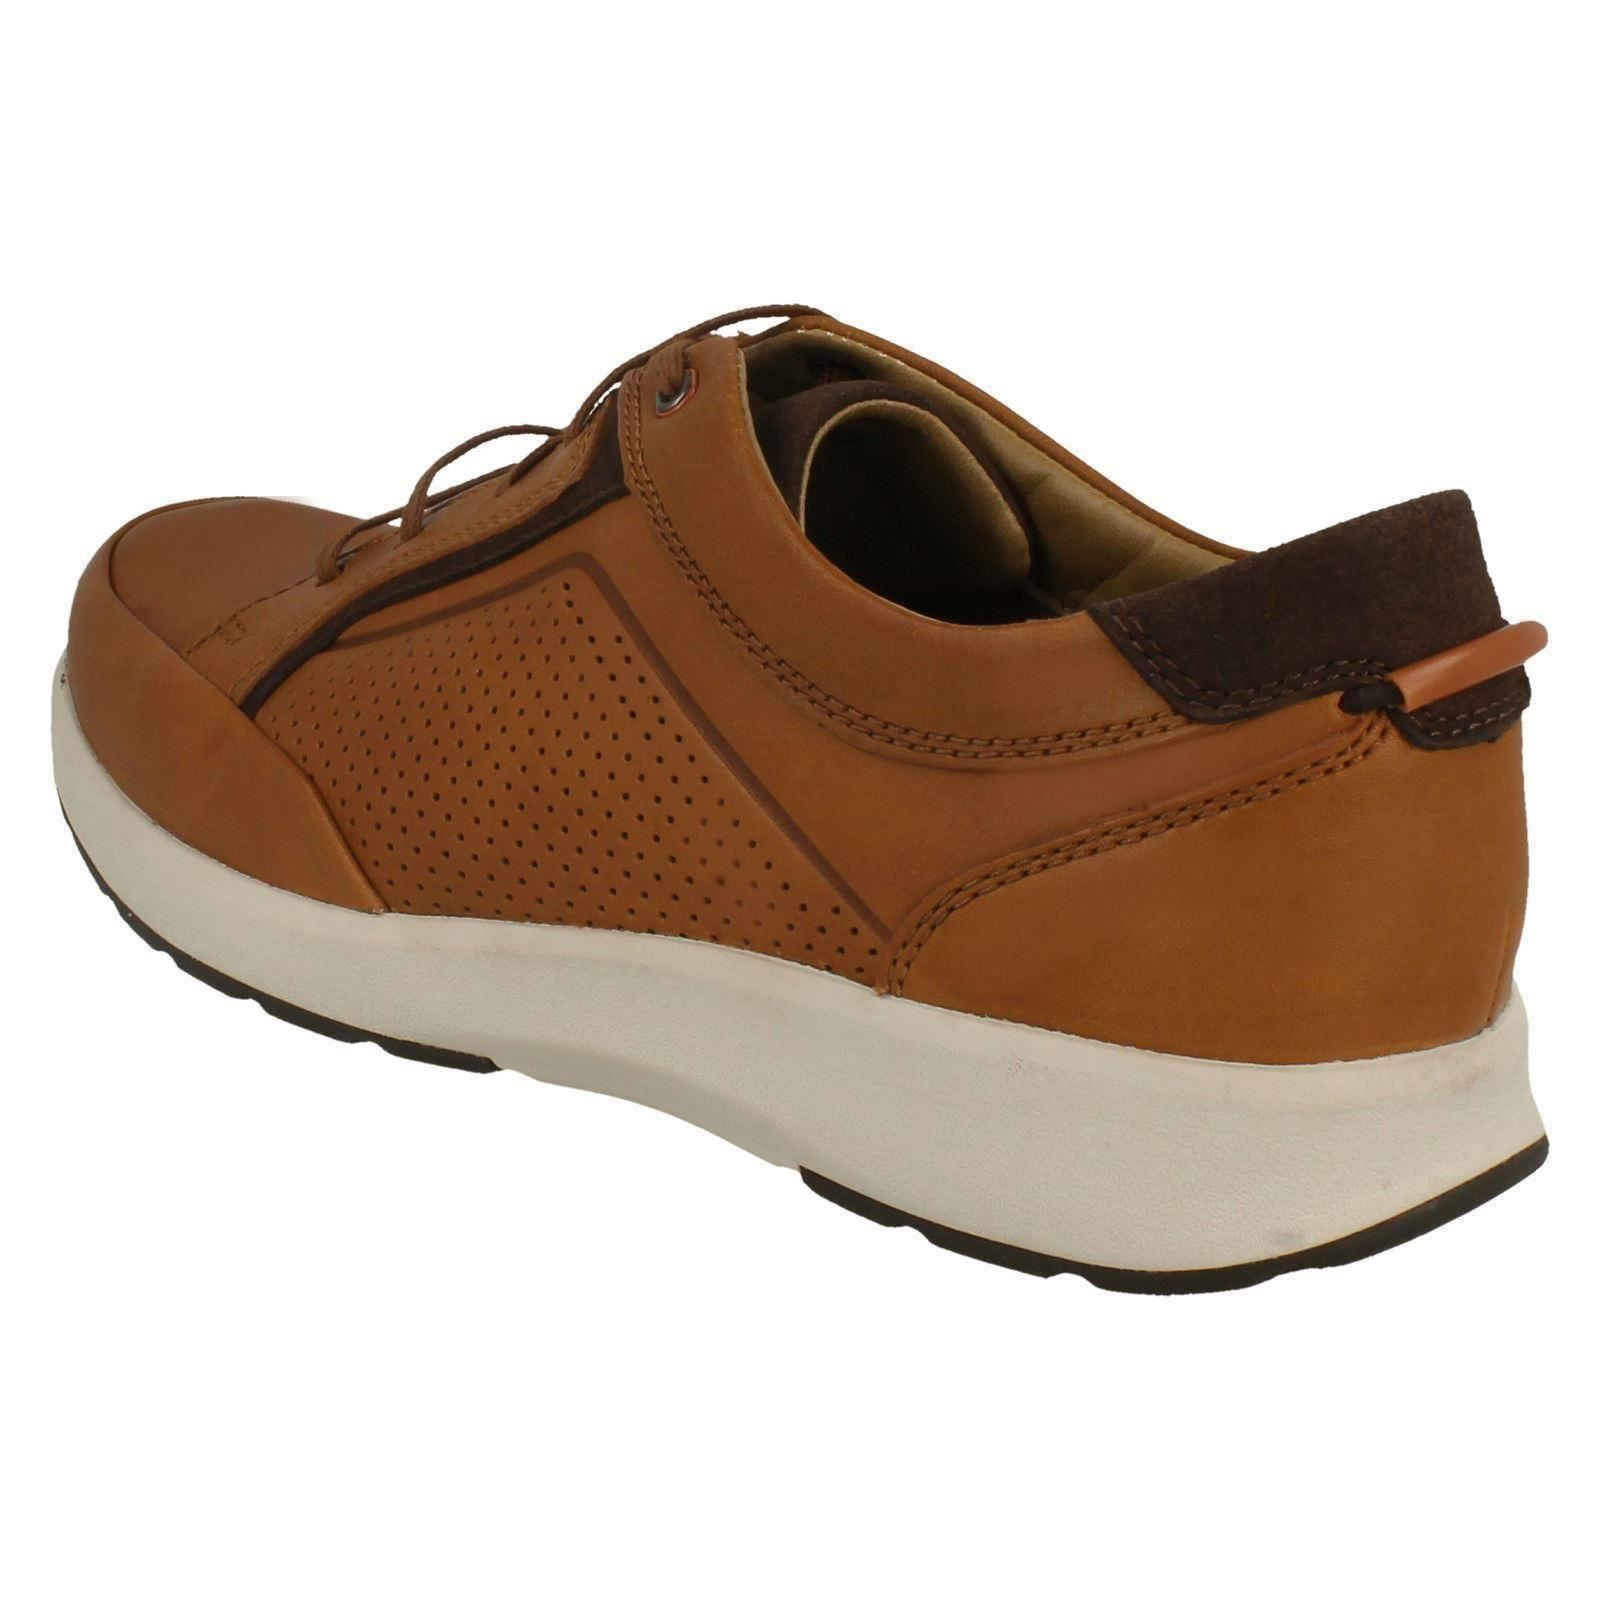 Mens Clarks Rounded Toe Casual Casual Casual Lace Up Leather & Textile schuhe Un Trail Form e22baa